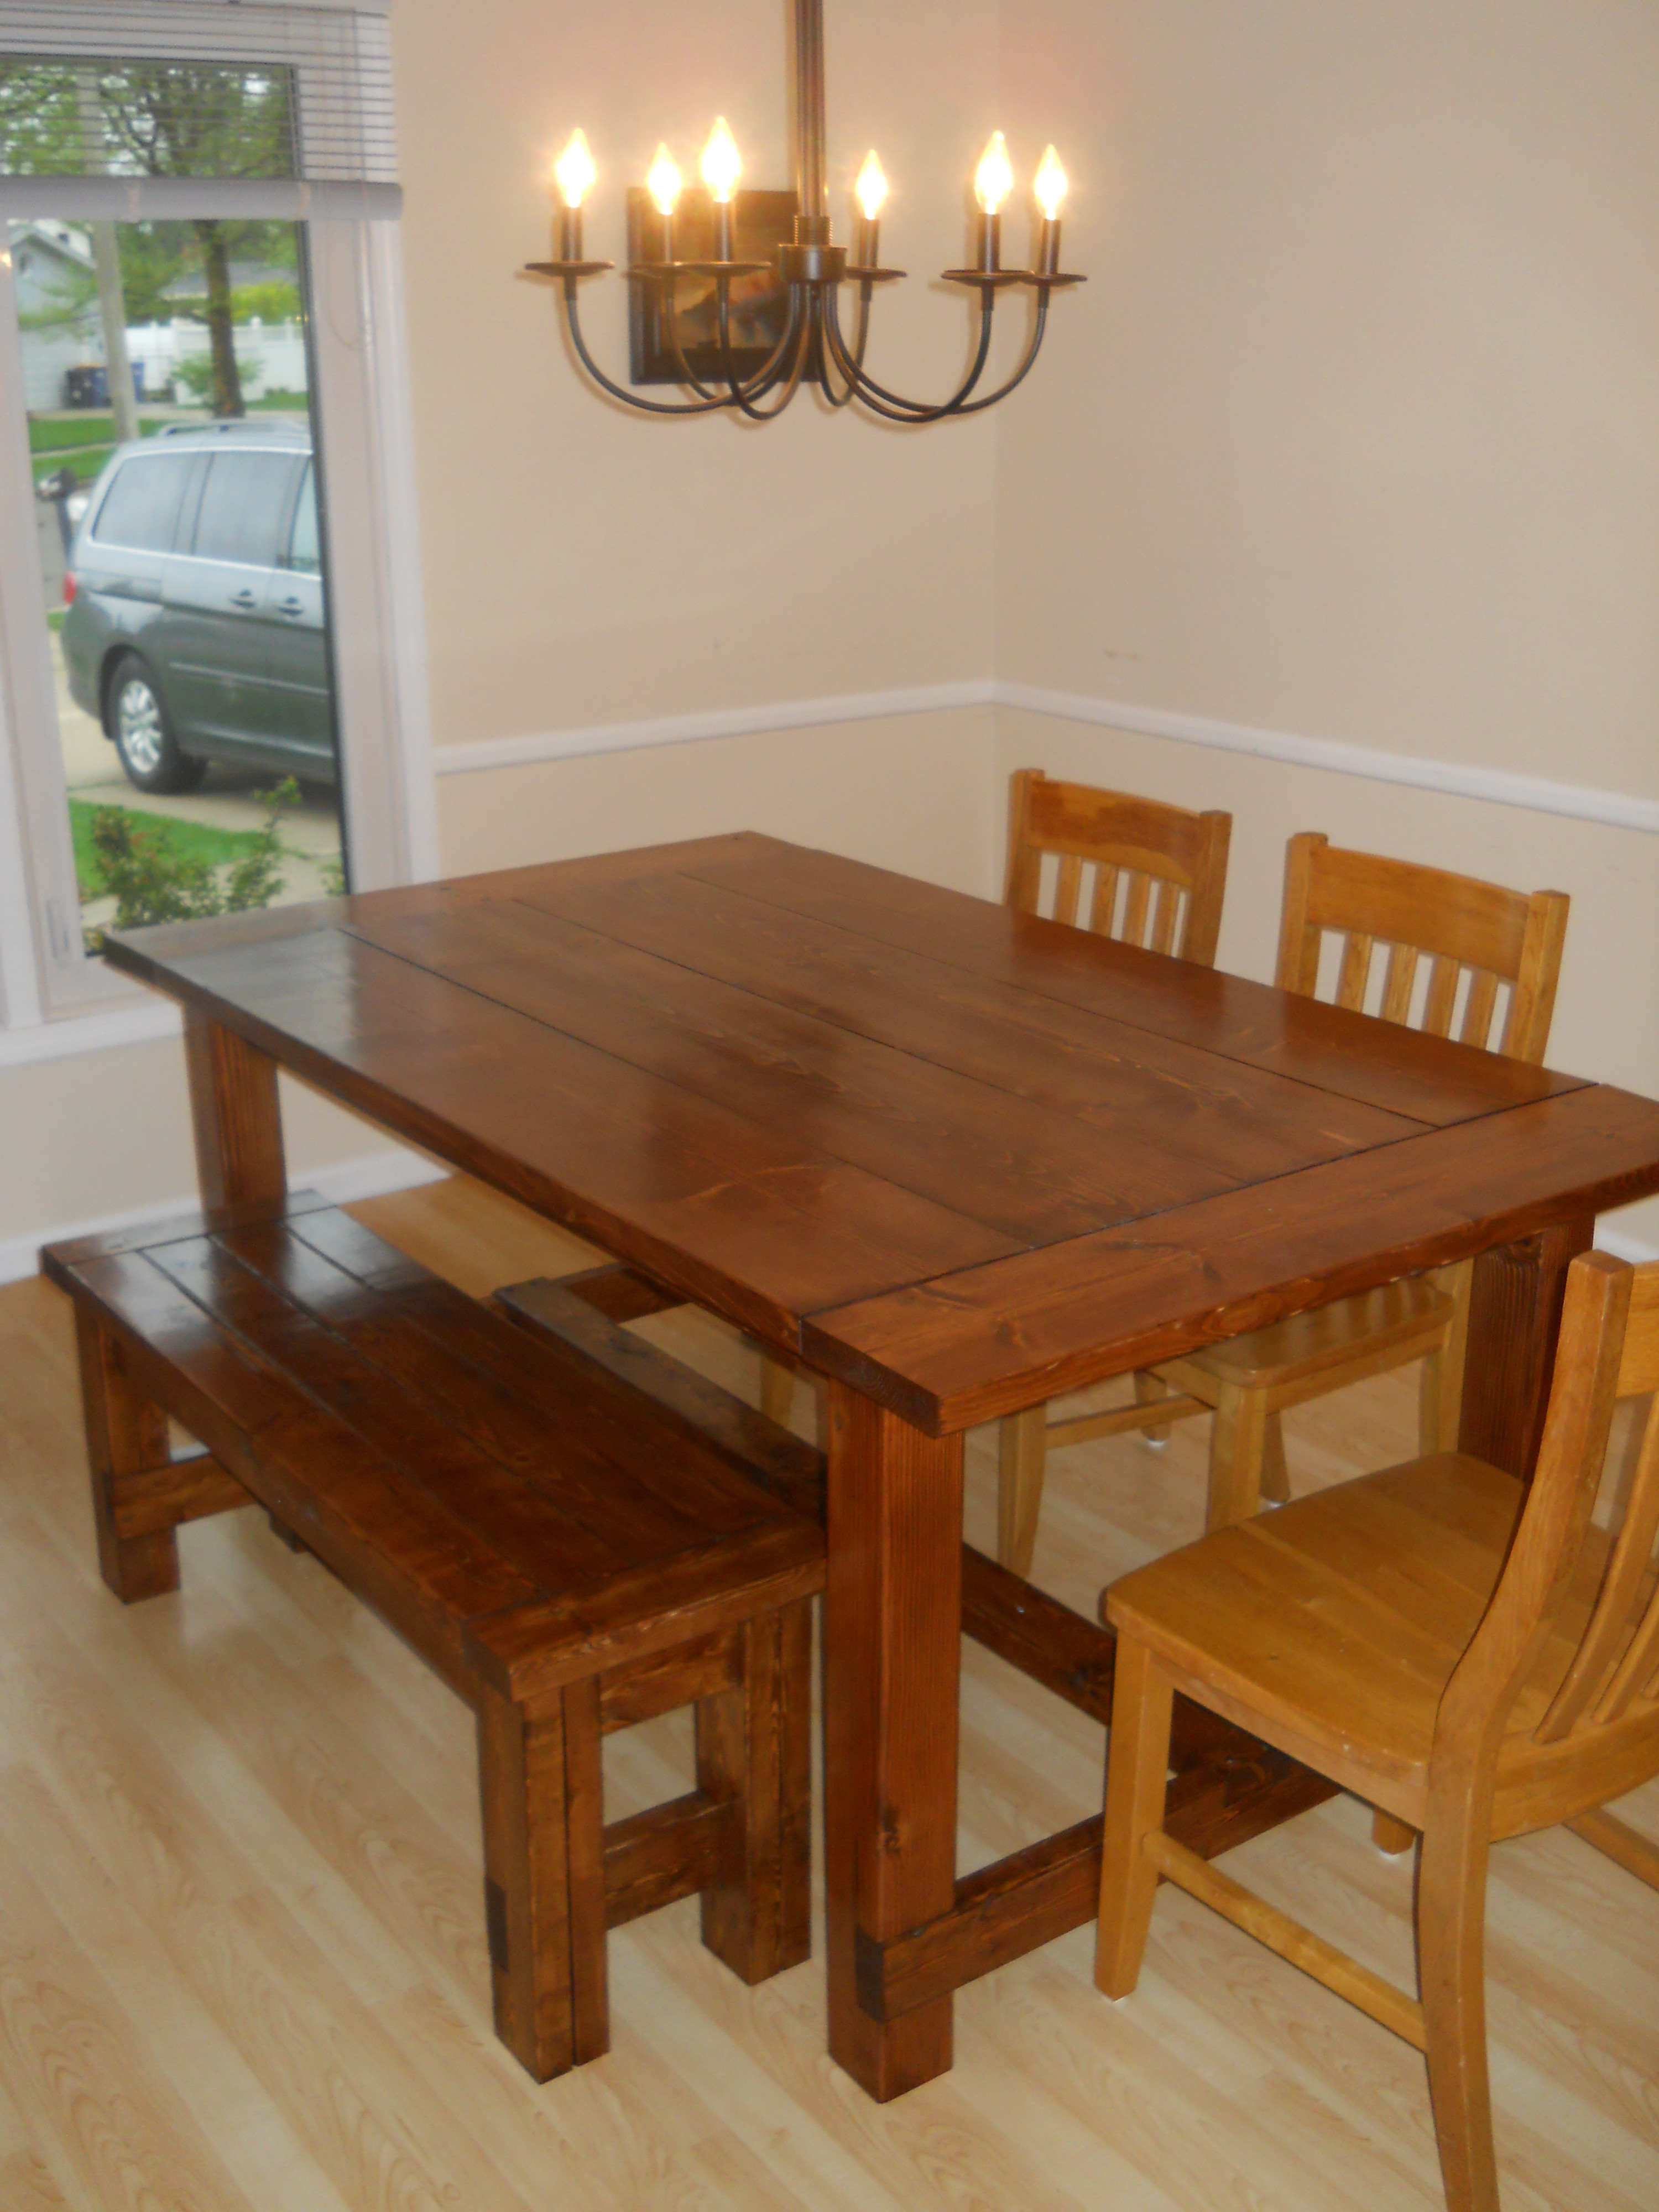 Best ideas about Room And Board Dining Table . Save or Pin Ana White Now.